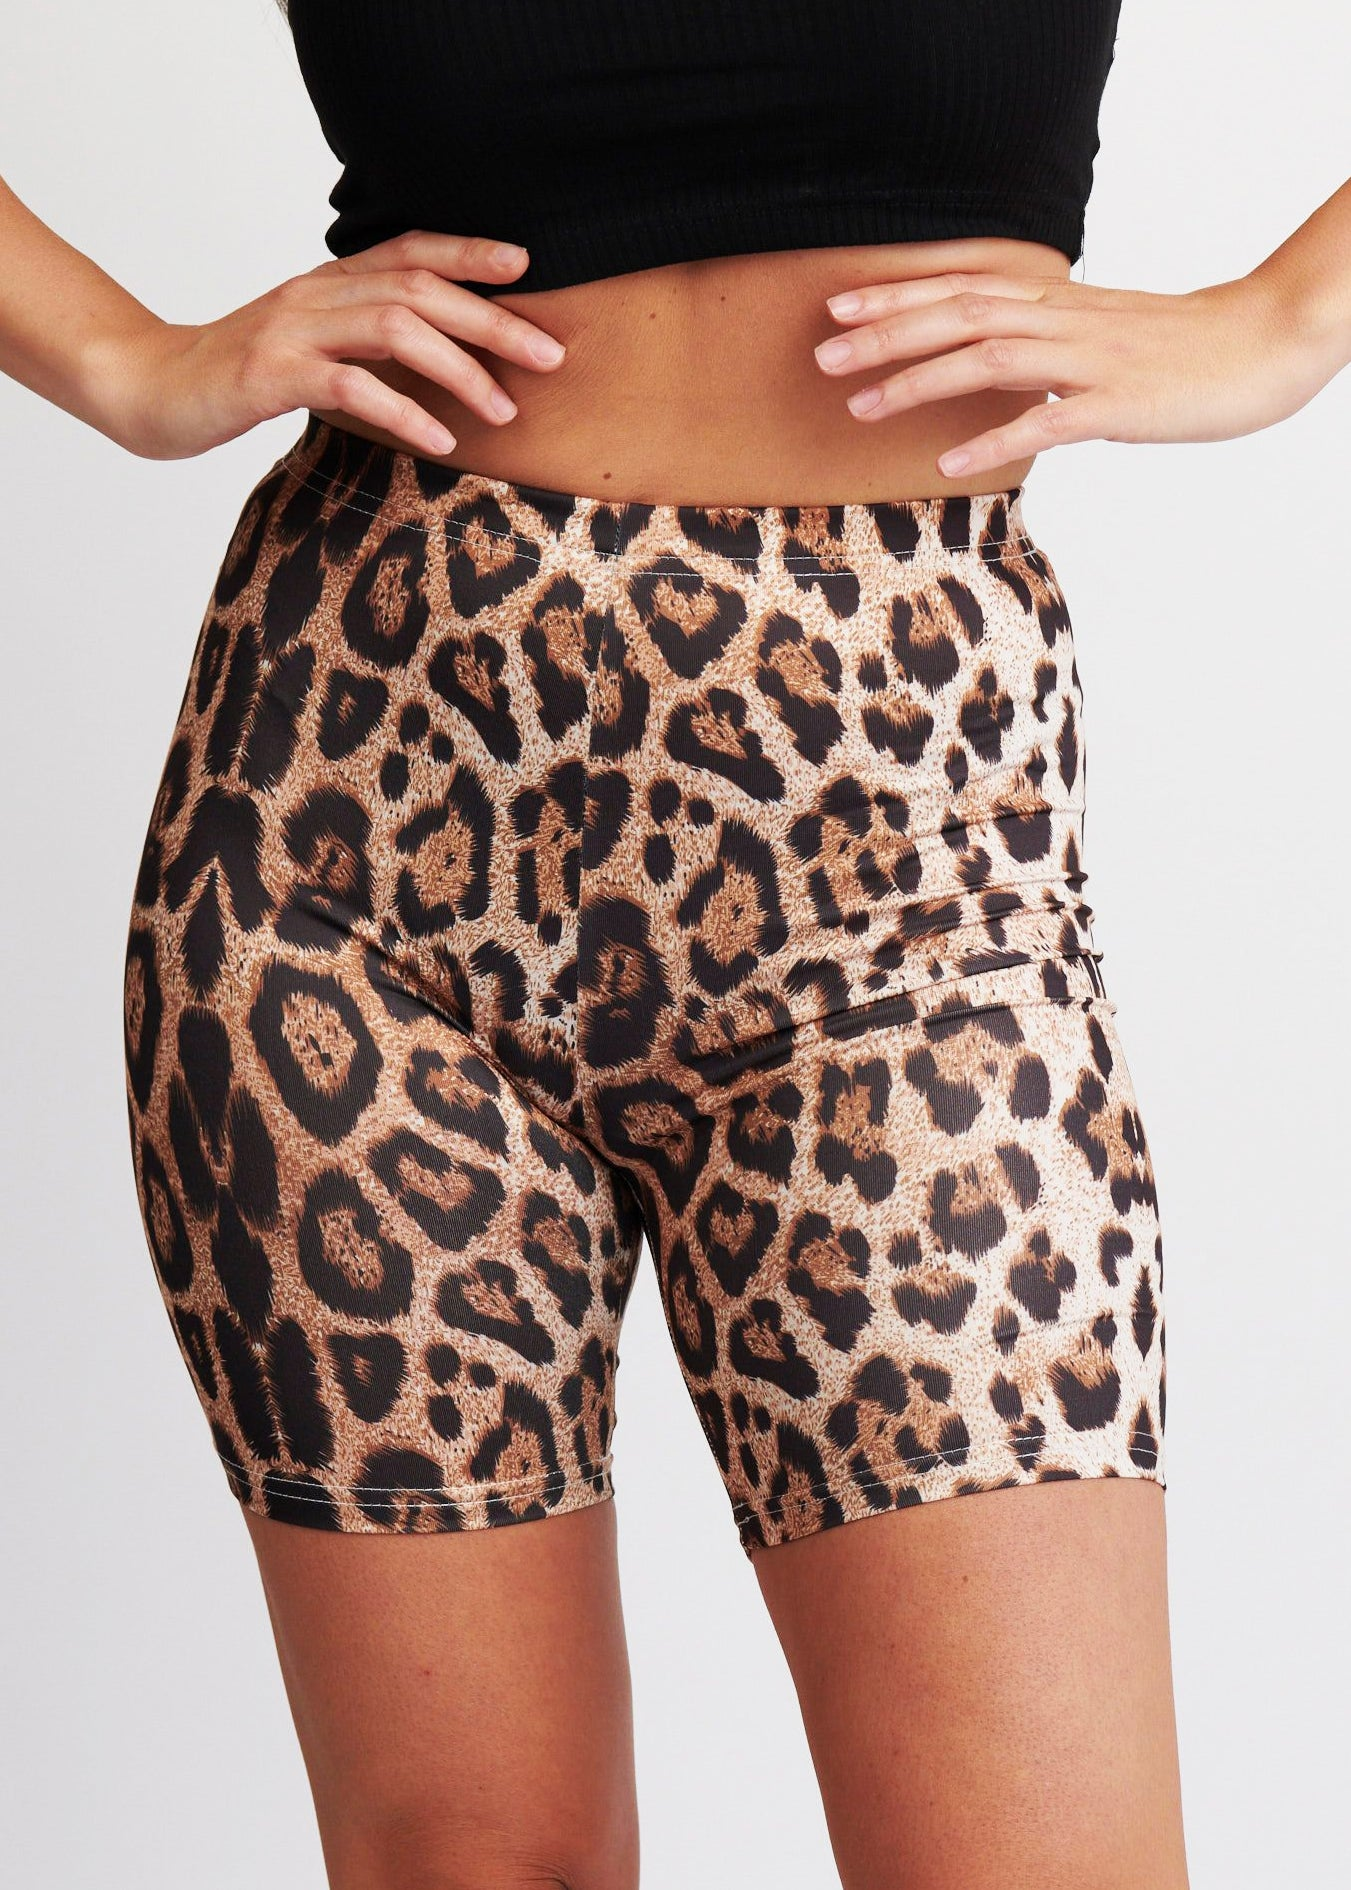 The Leopard Bike Short